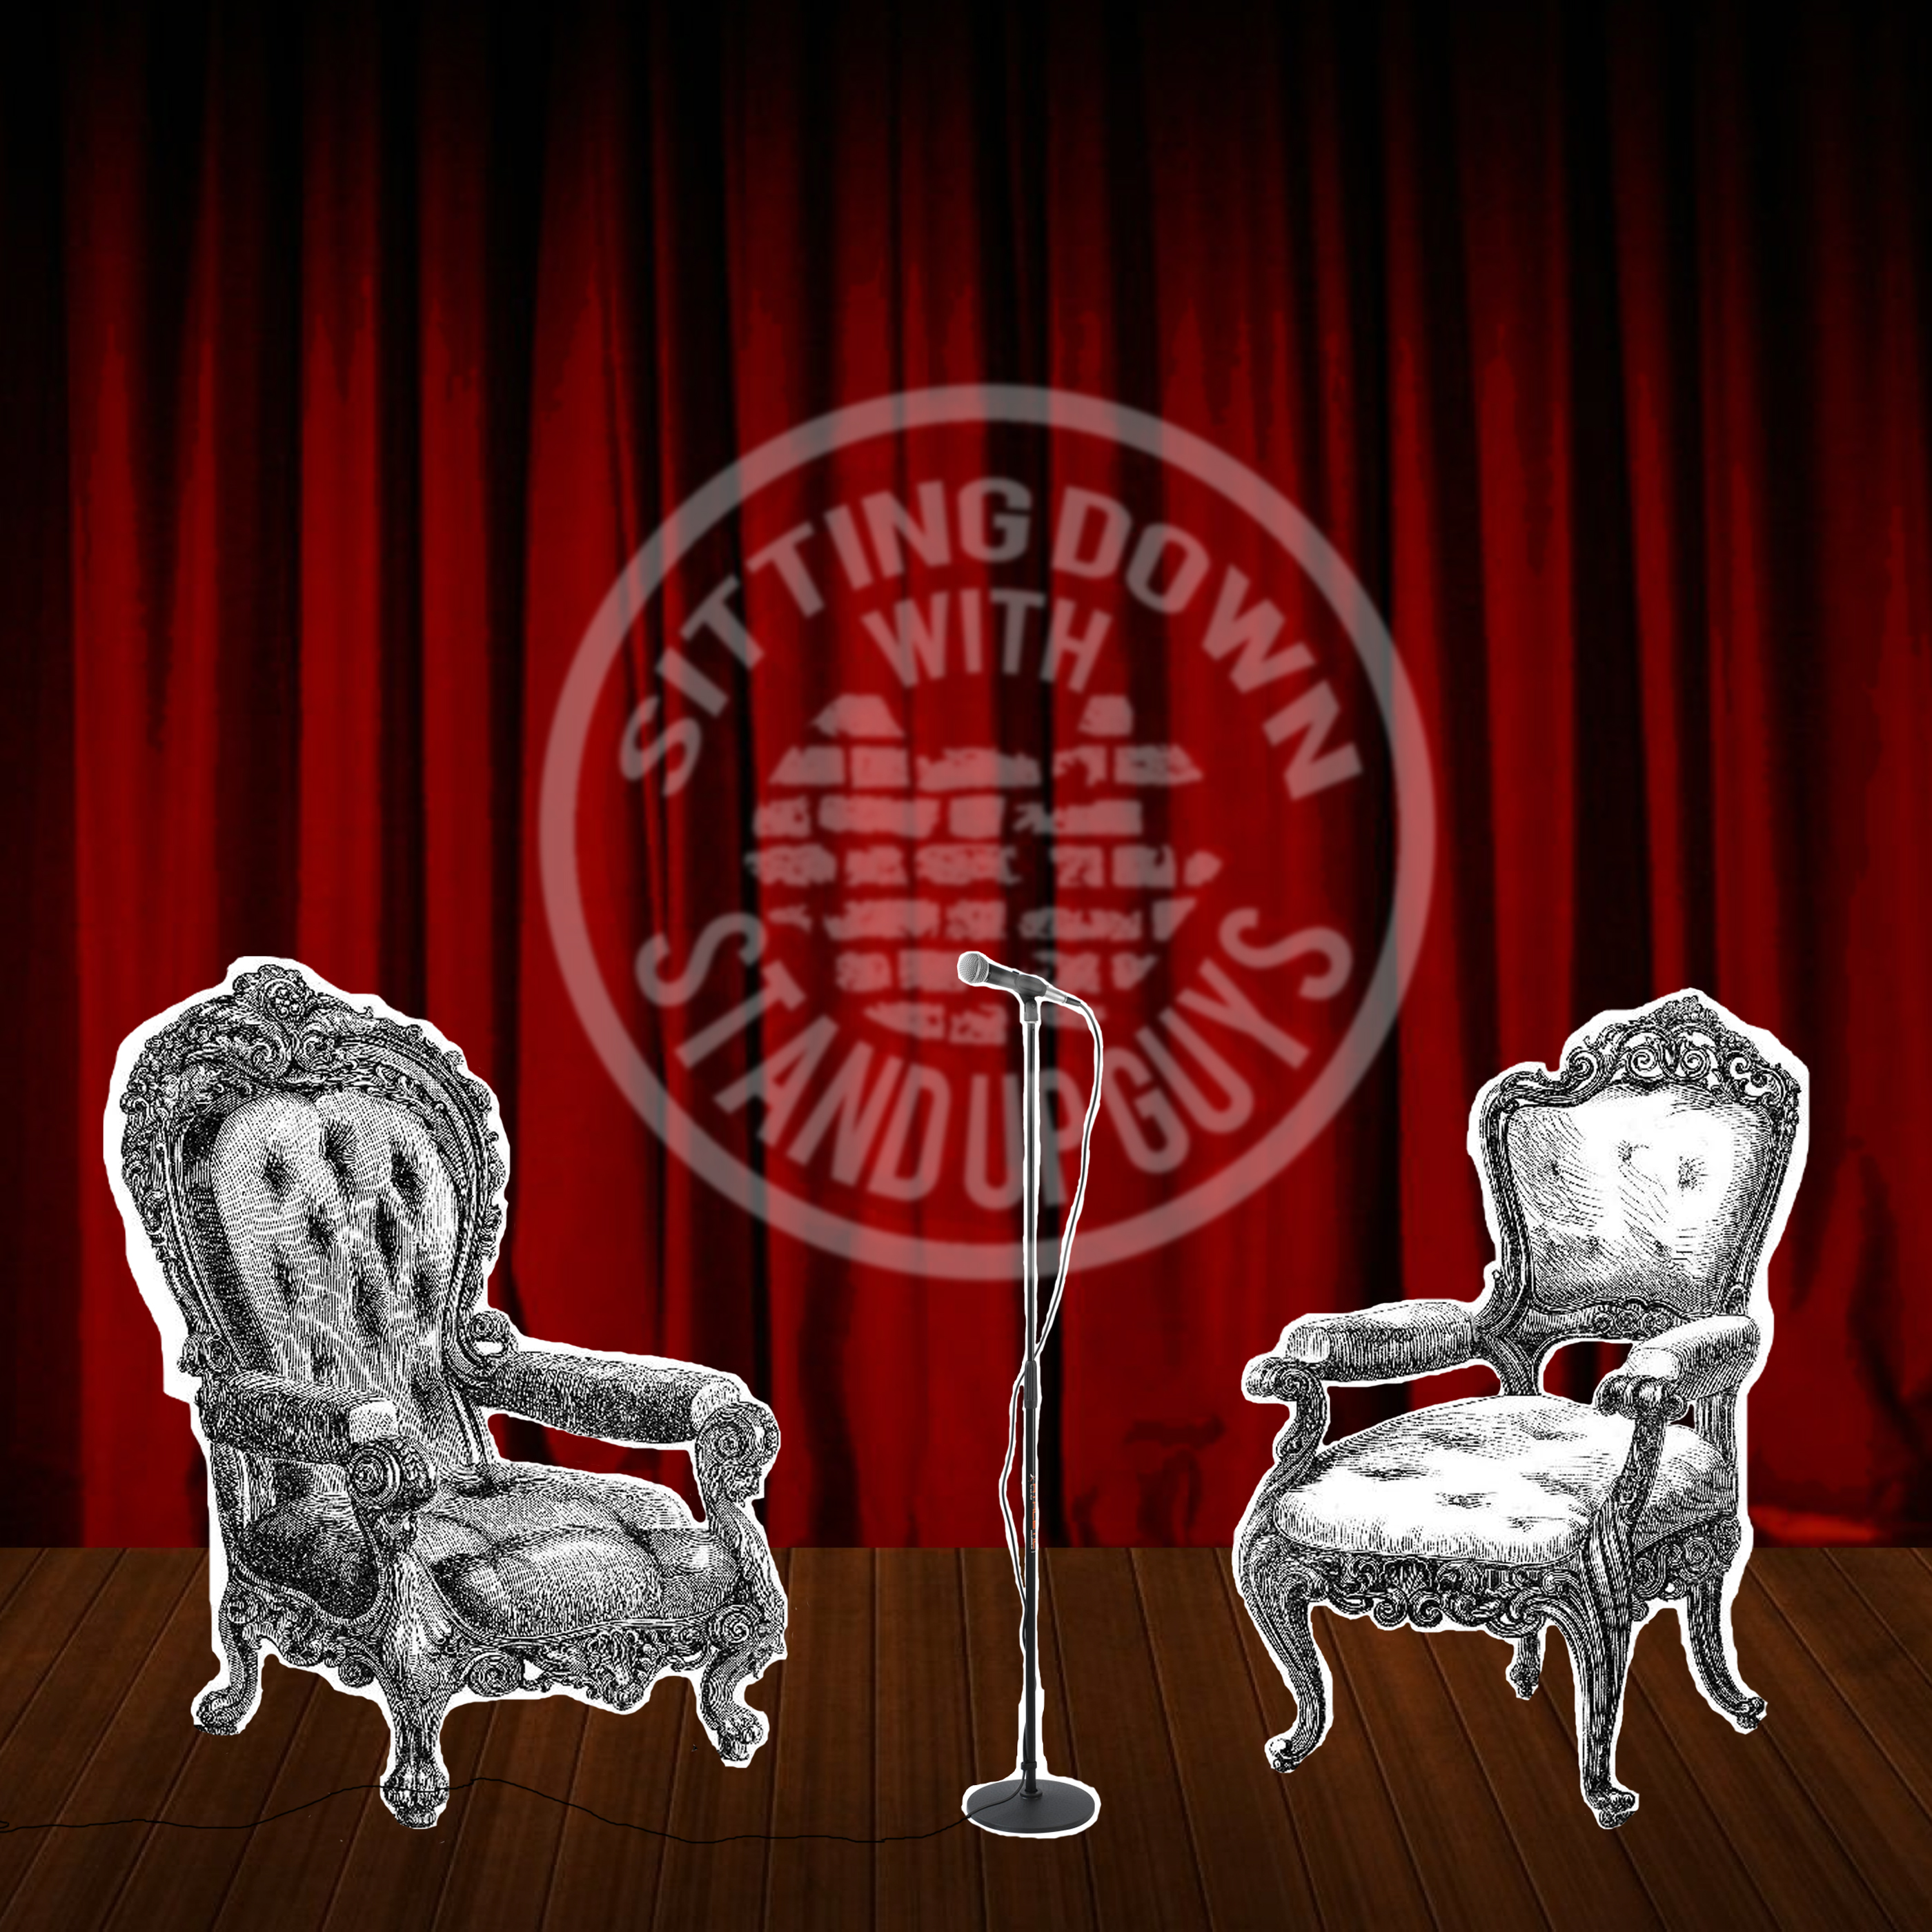 Sitting Down with Stand-Up Guys